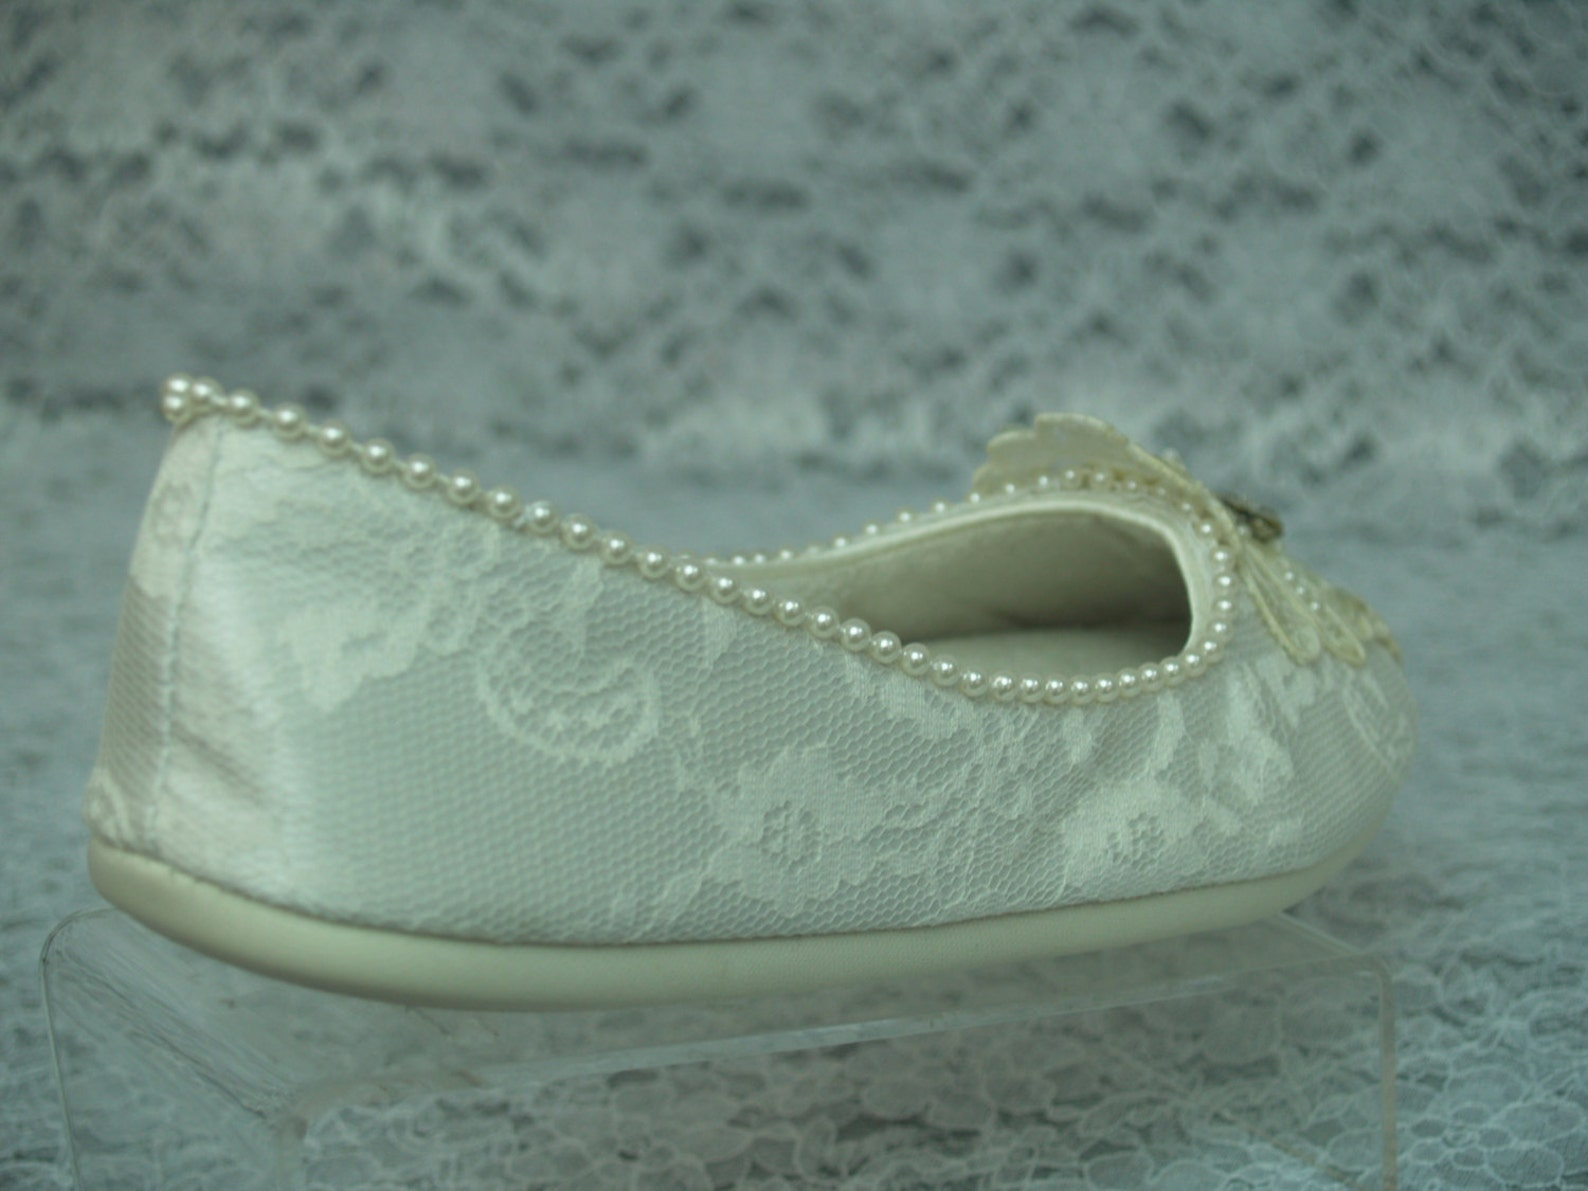 wedding ivory flats vegan shoes size 5, bridal comfortable slipper, cushioned ballet slipper, art deco nouveau, old hollywood gl